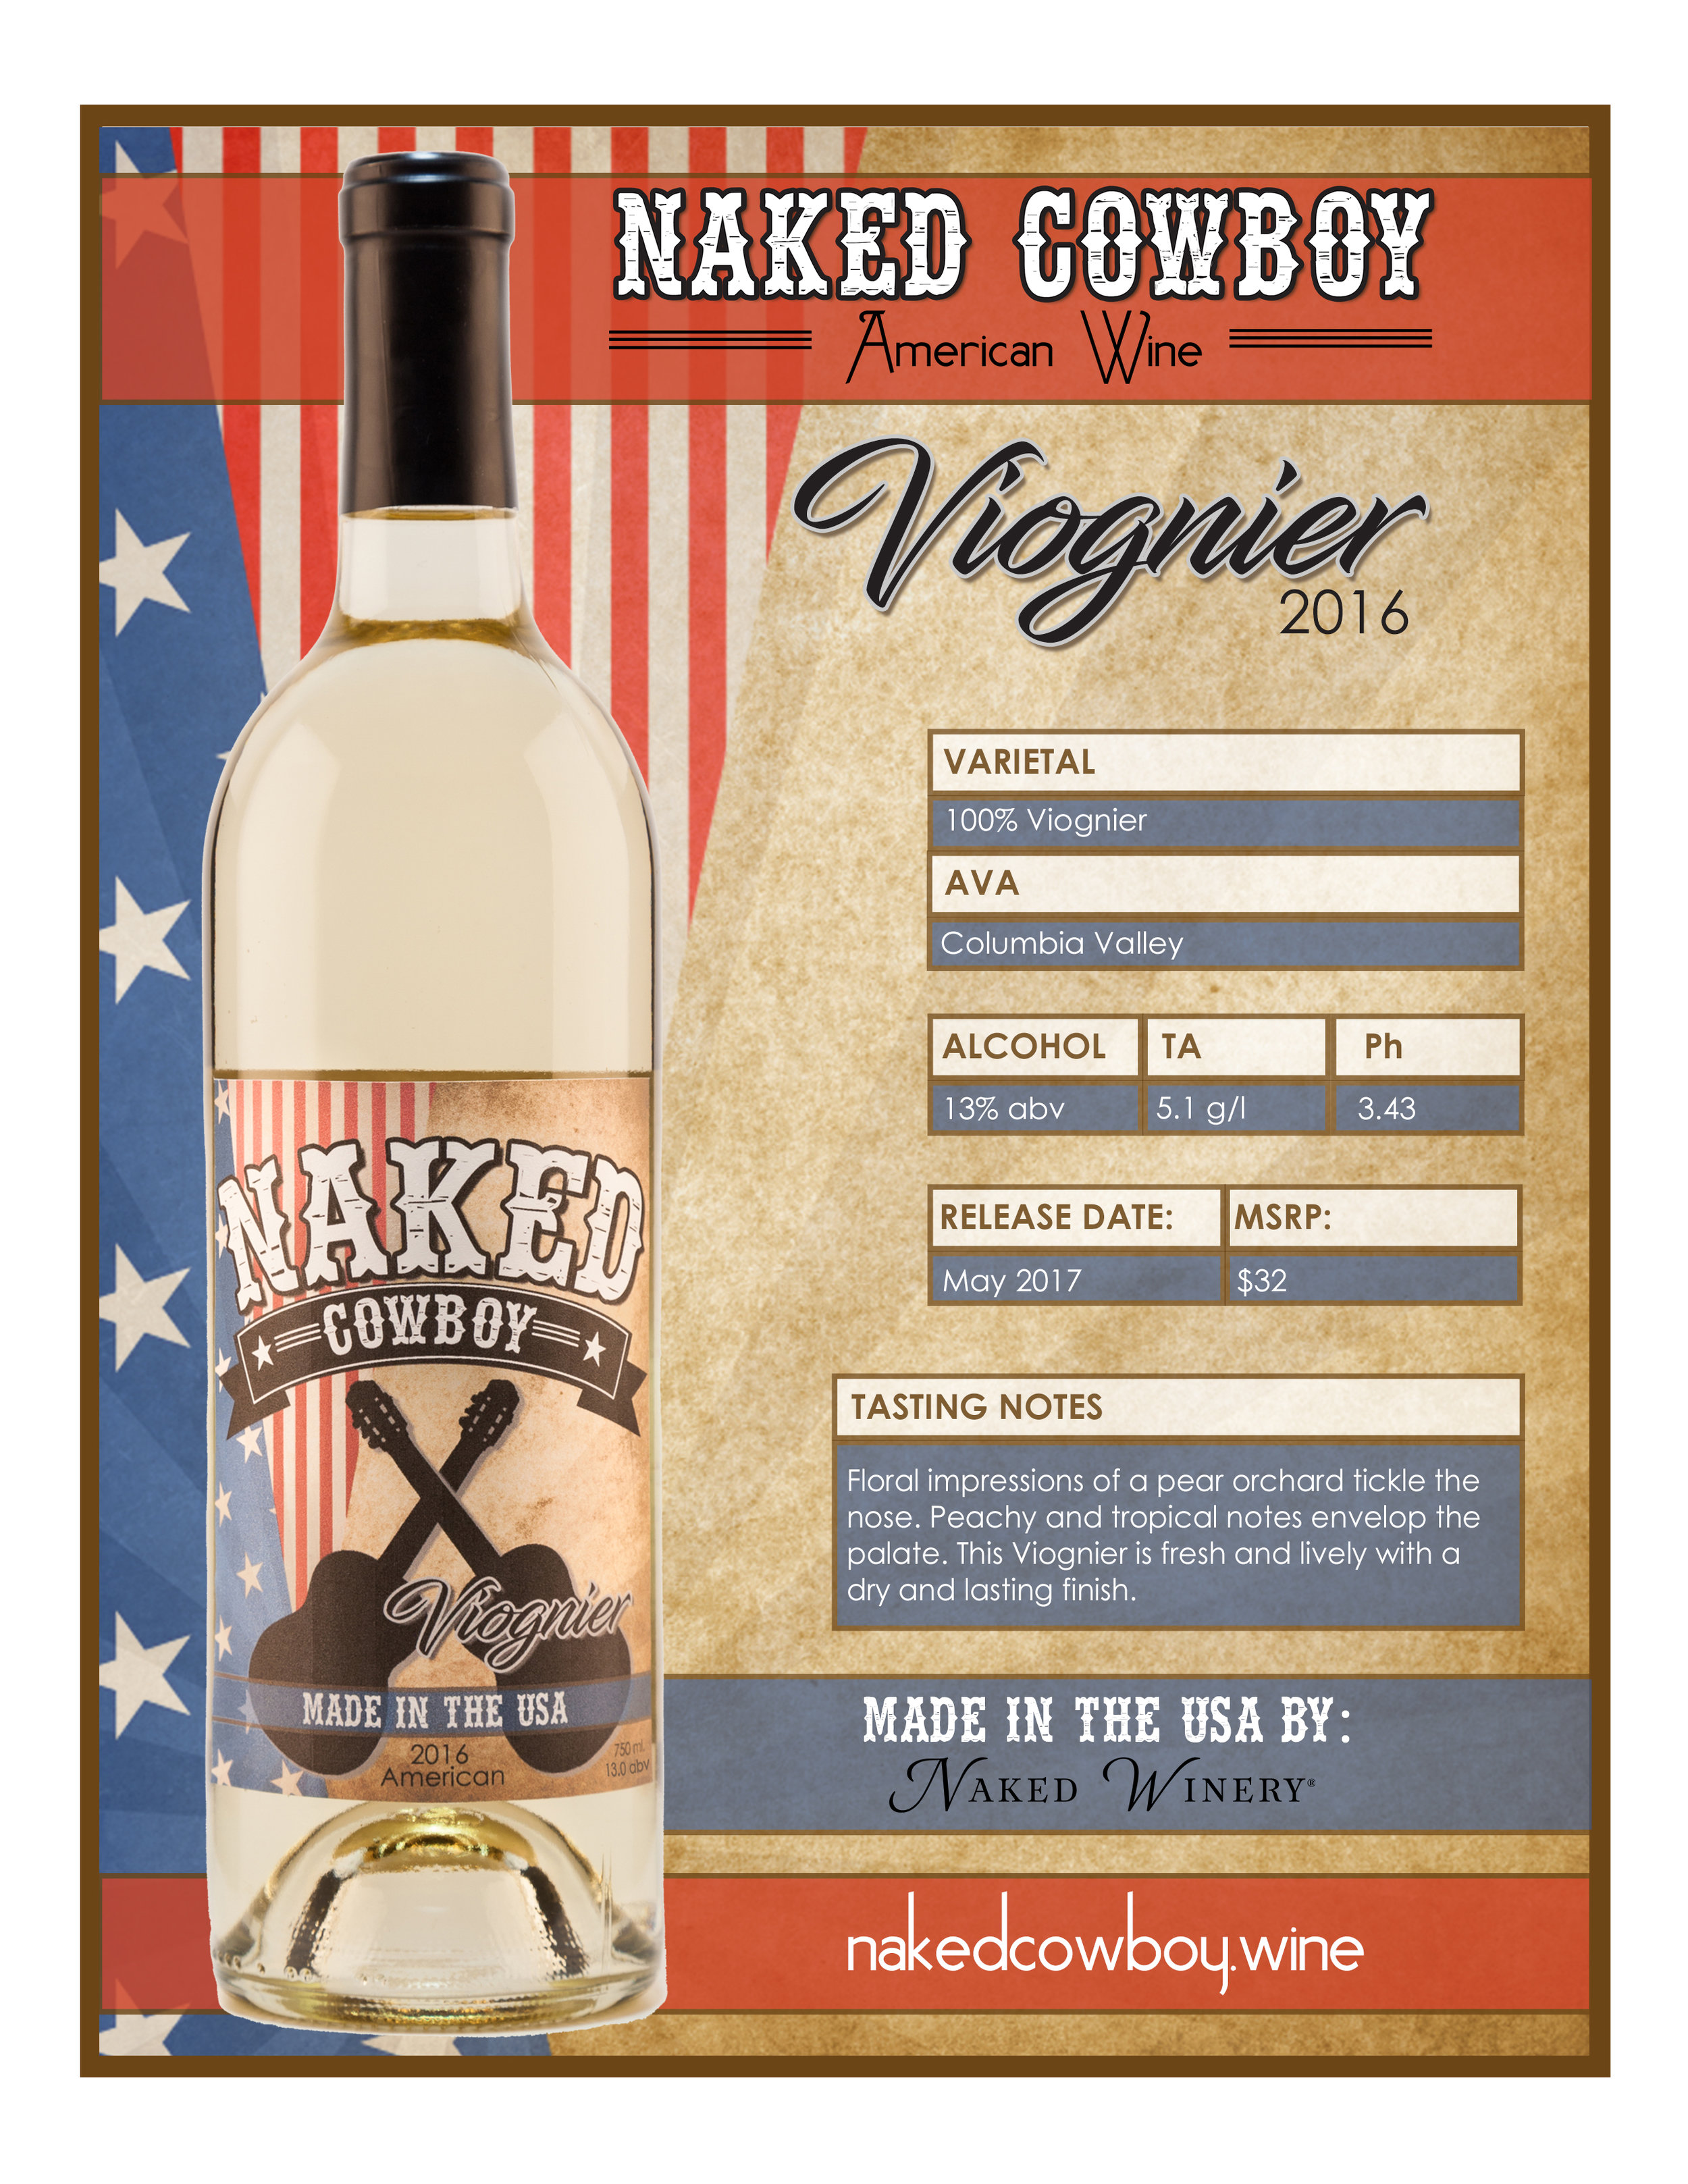 Naked cowboy viognier - Fact Sheet